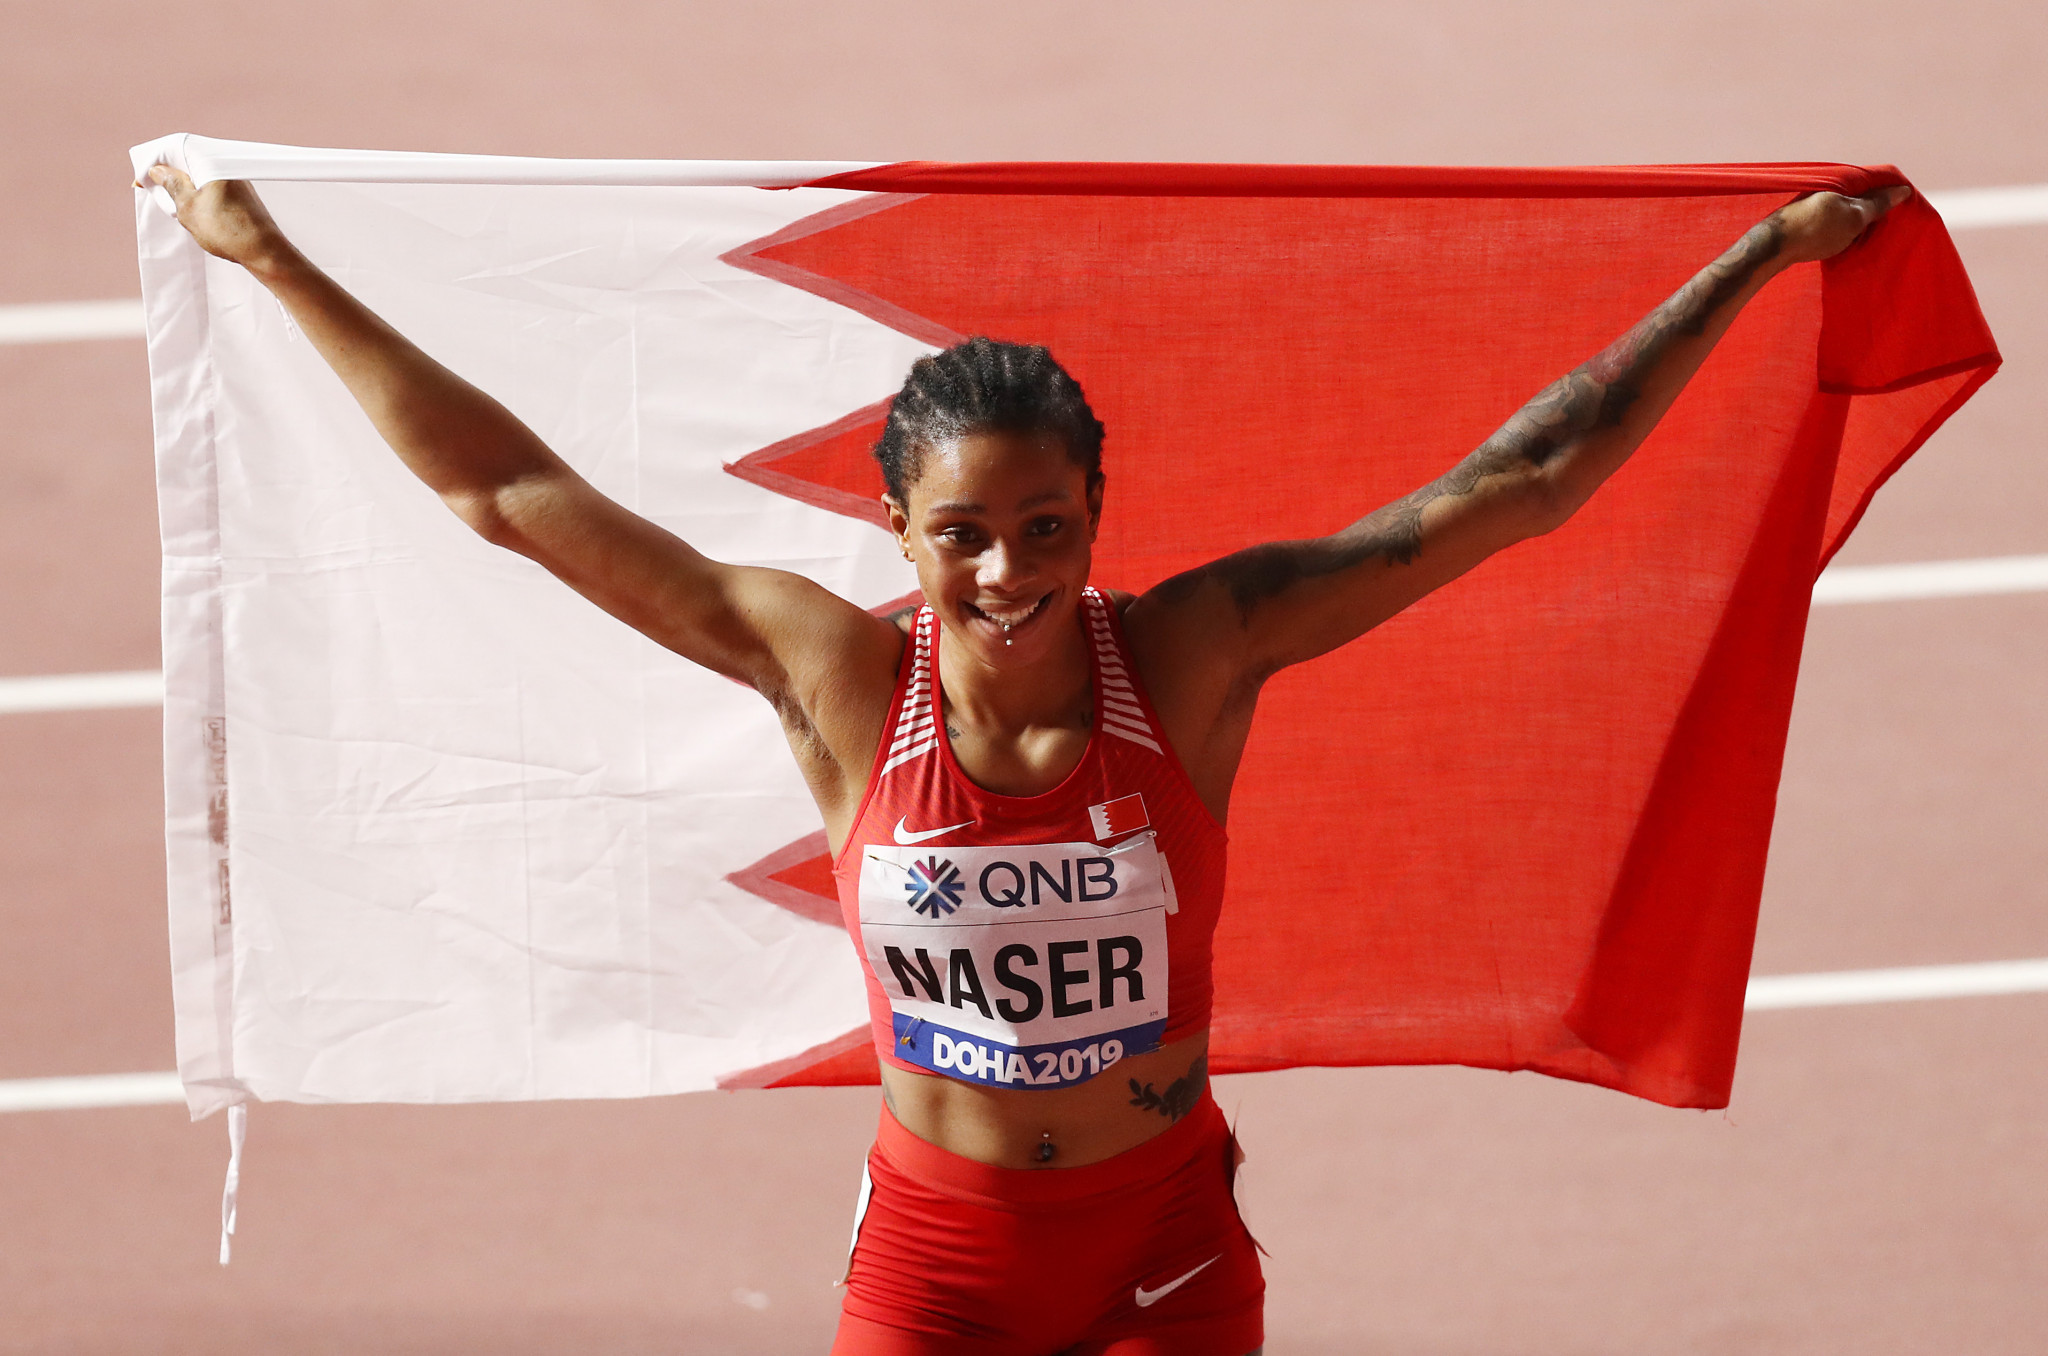 Salwa Eid Naser will be allowed to run at the re-arranged Olympic Games in Tokyo after escaping a two-year doping ban ©Getty Images